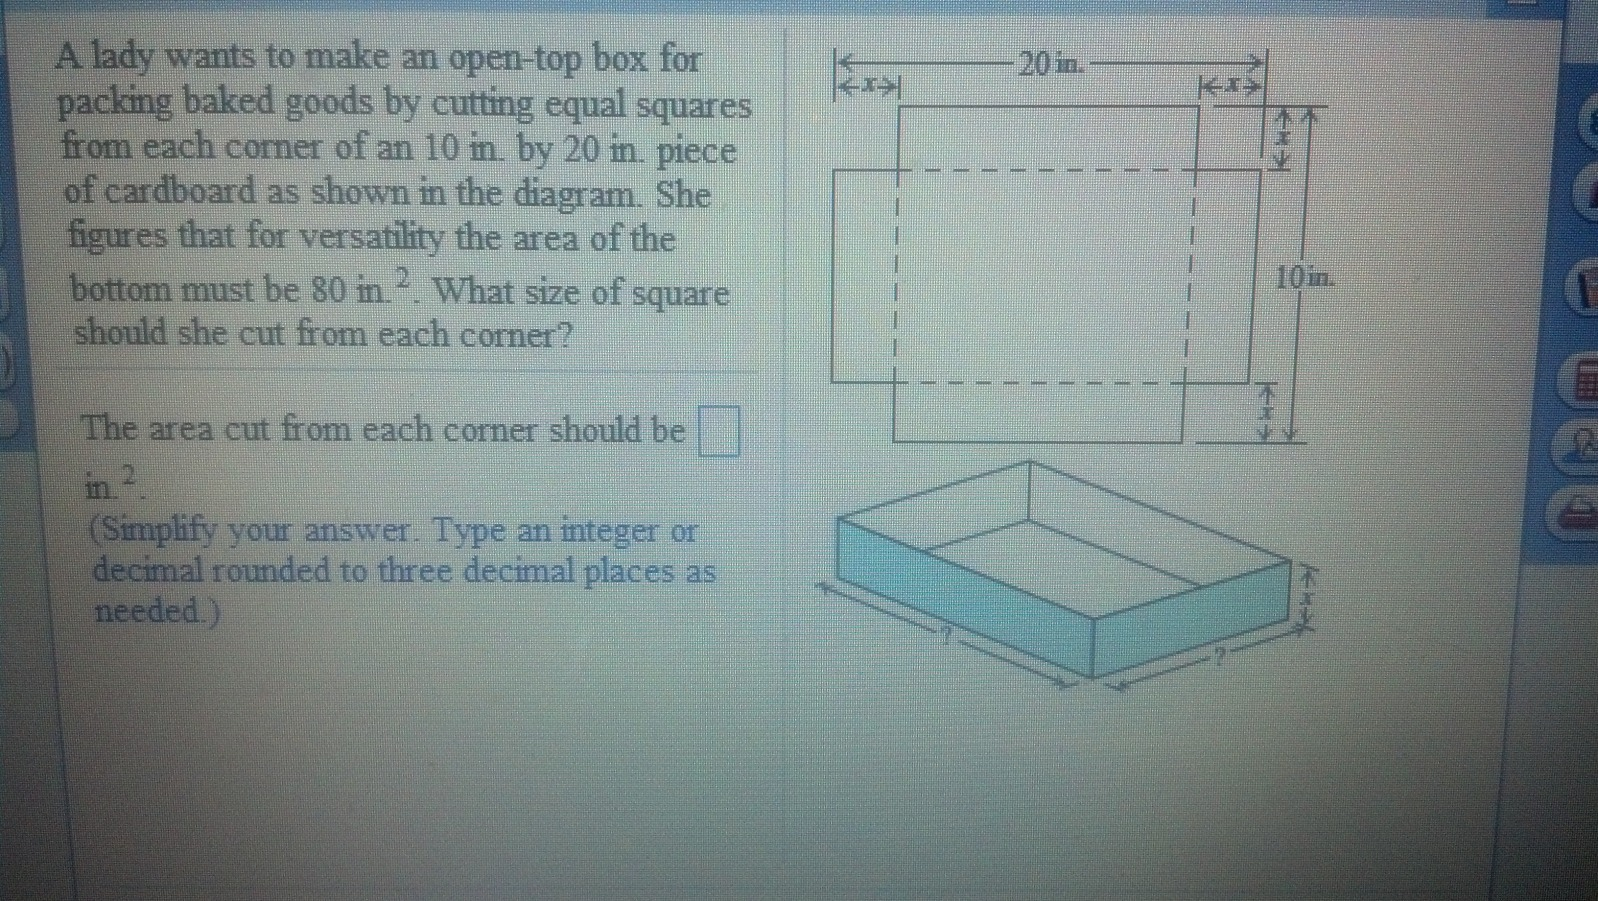 A lady wants to make an open-top box for packing b